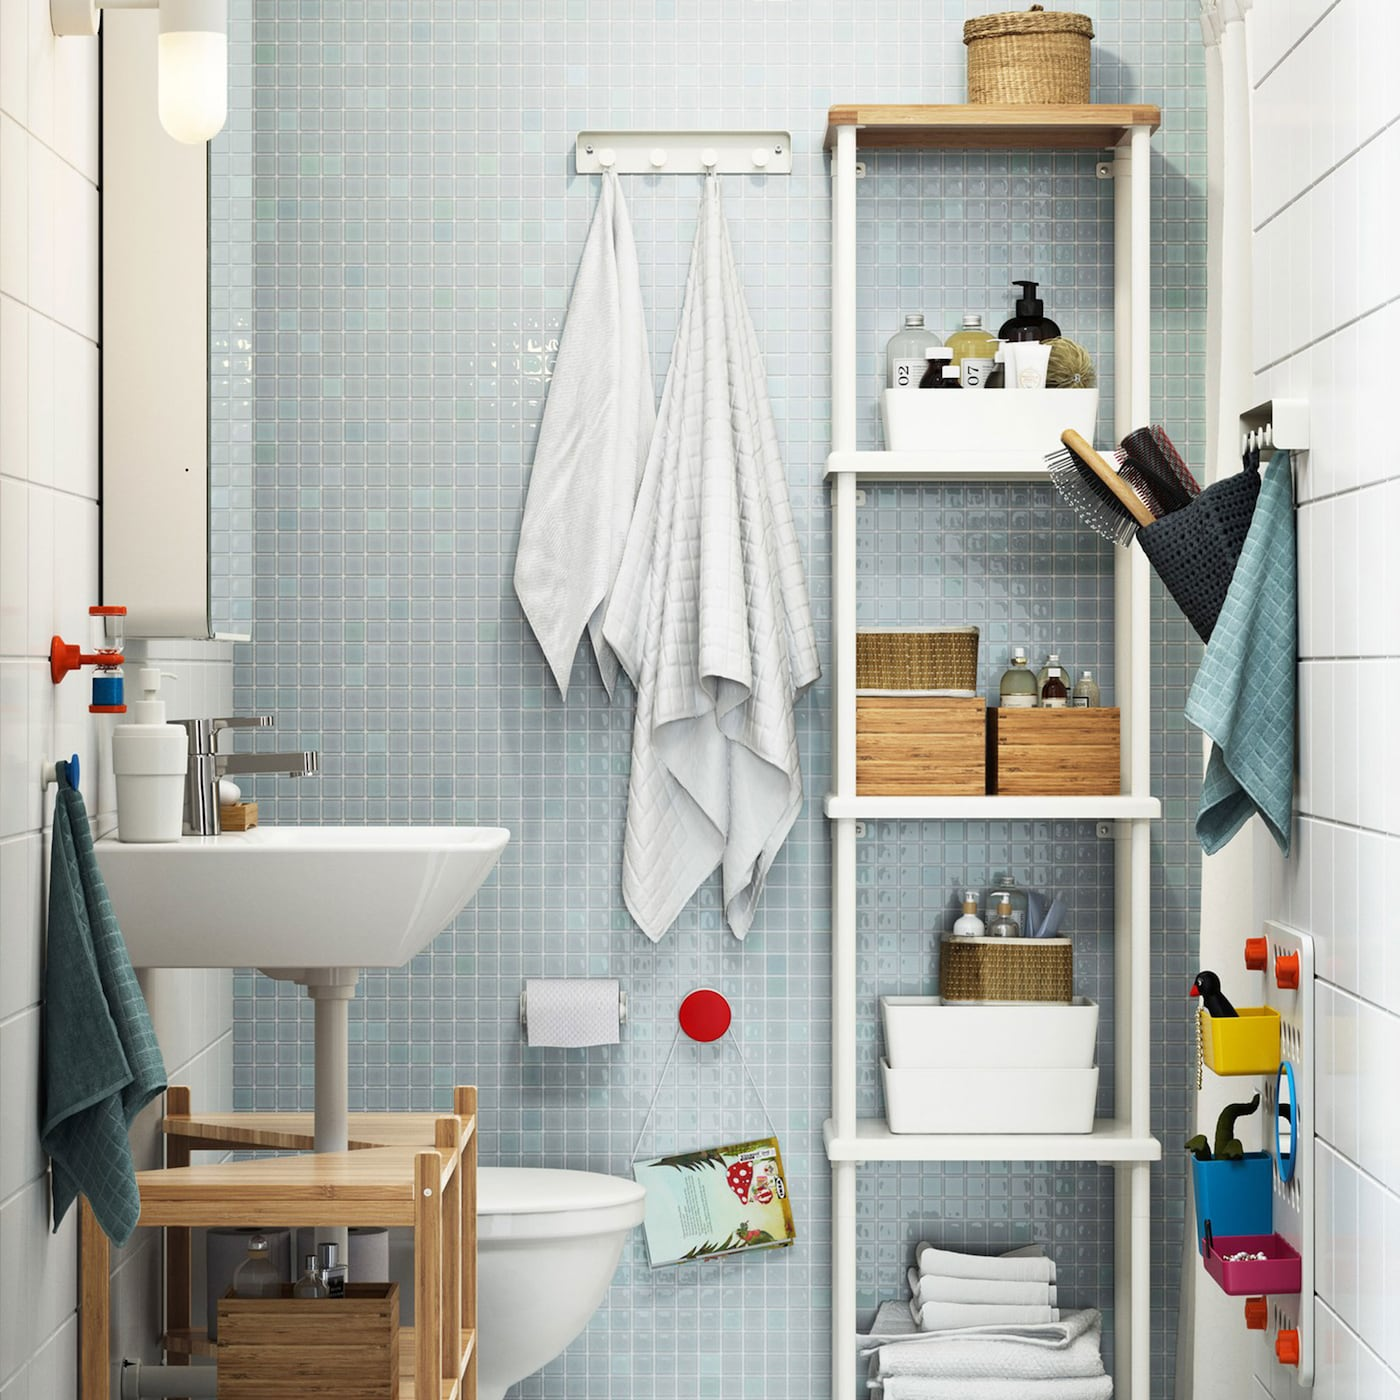 Small family bathroom with white and light blue tiles, and DYNAN tall white open shelving unit filled with bathroom accessories.